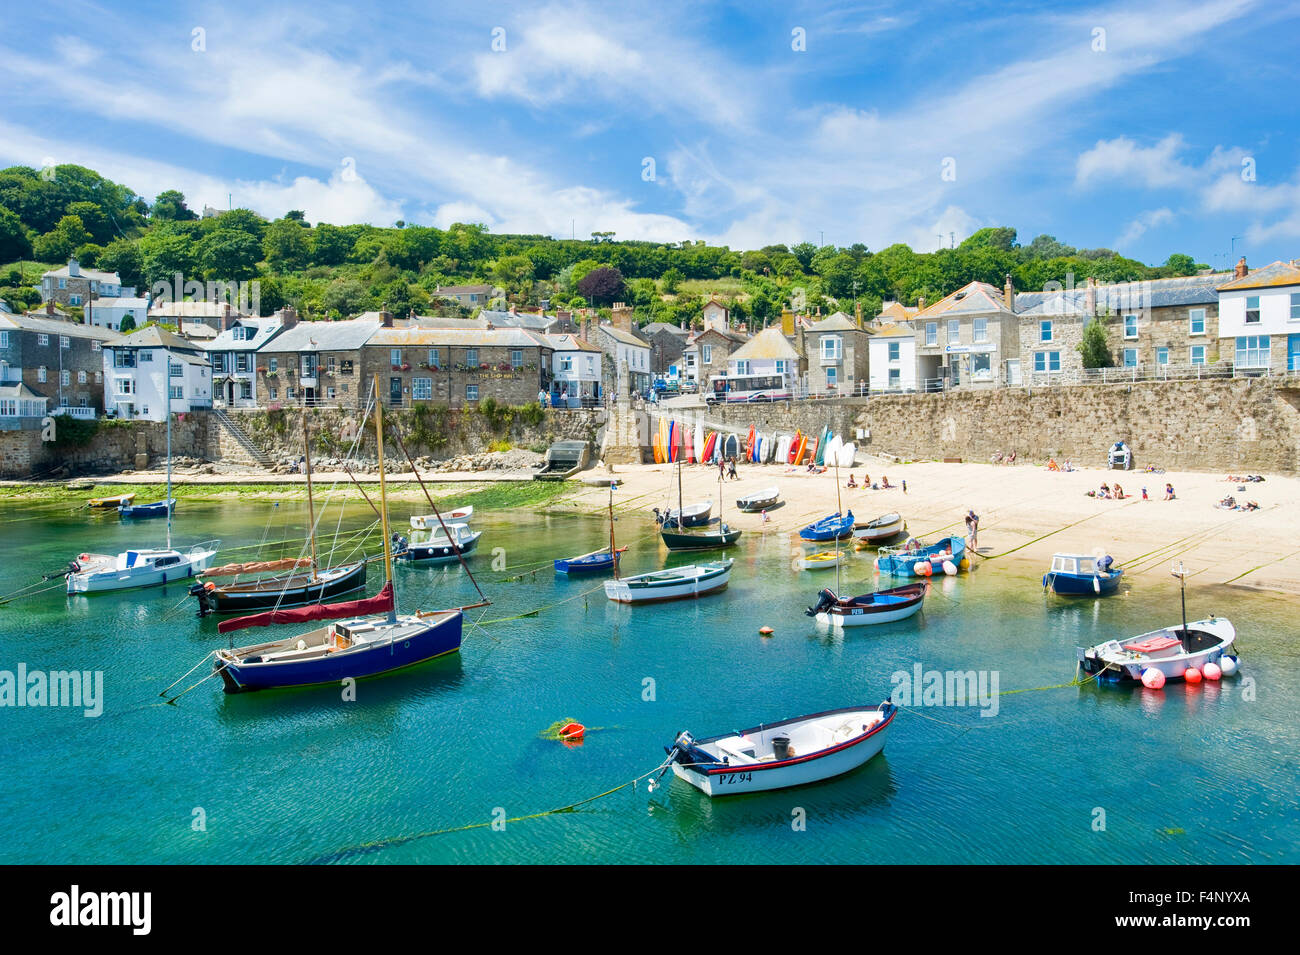 A view of the harbour in the quaint and picturesque fishing port and village of Mousehole in Cornwall. - Stock Image